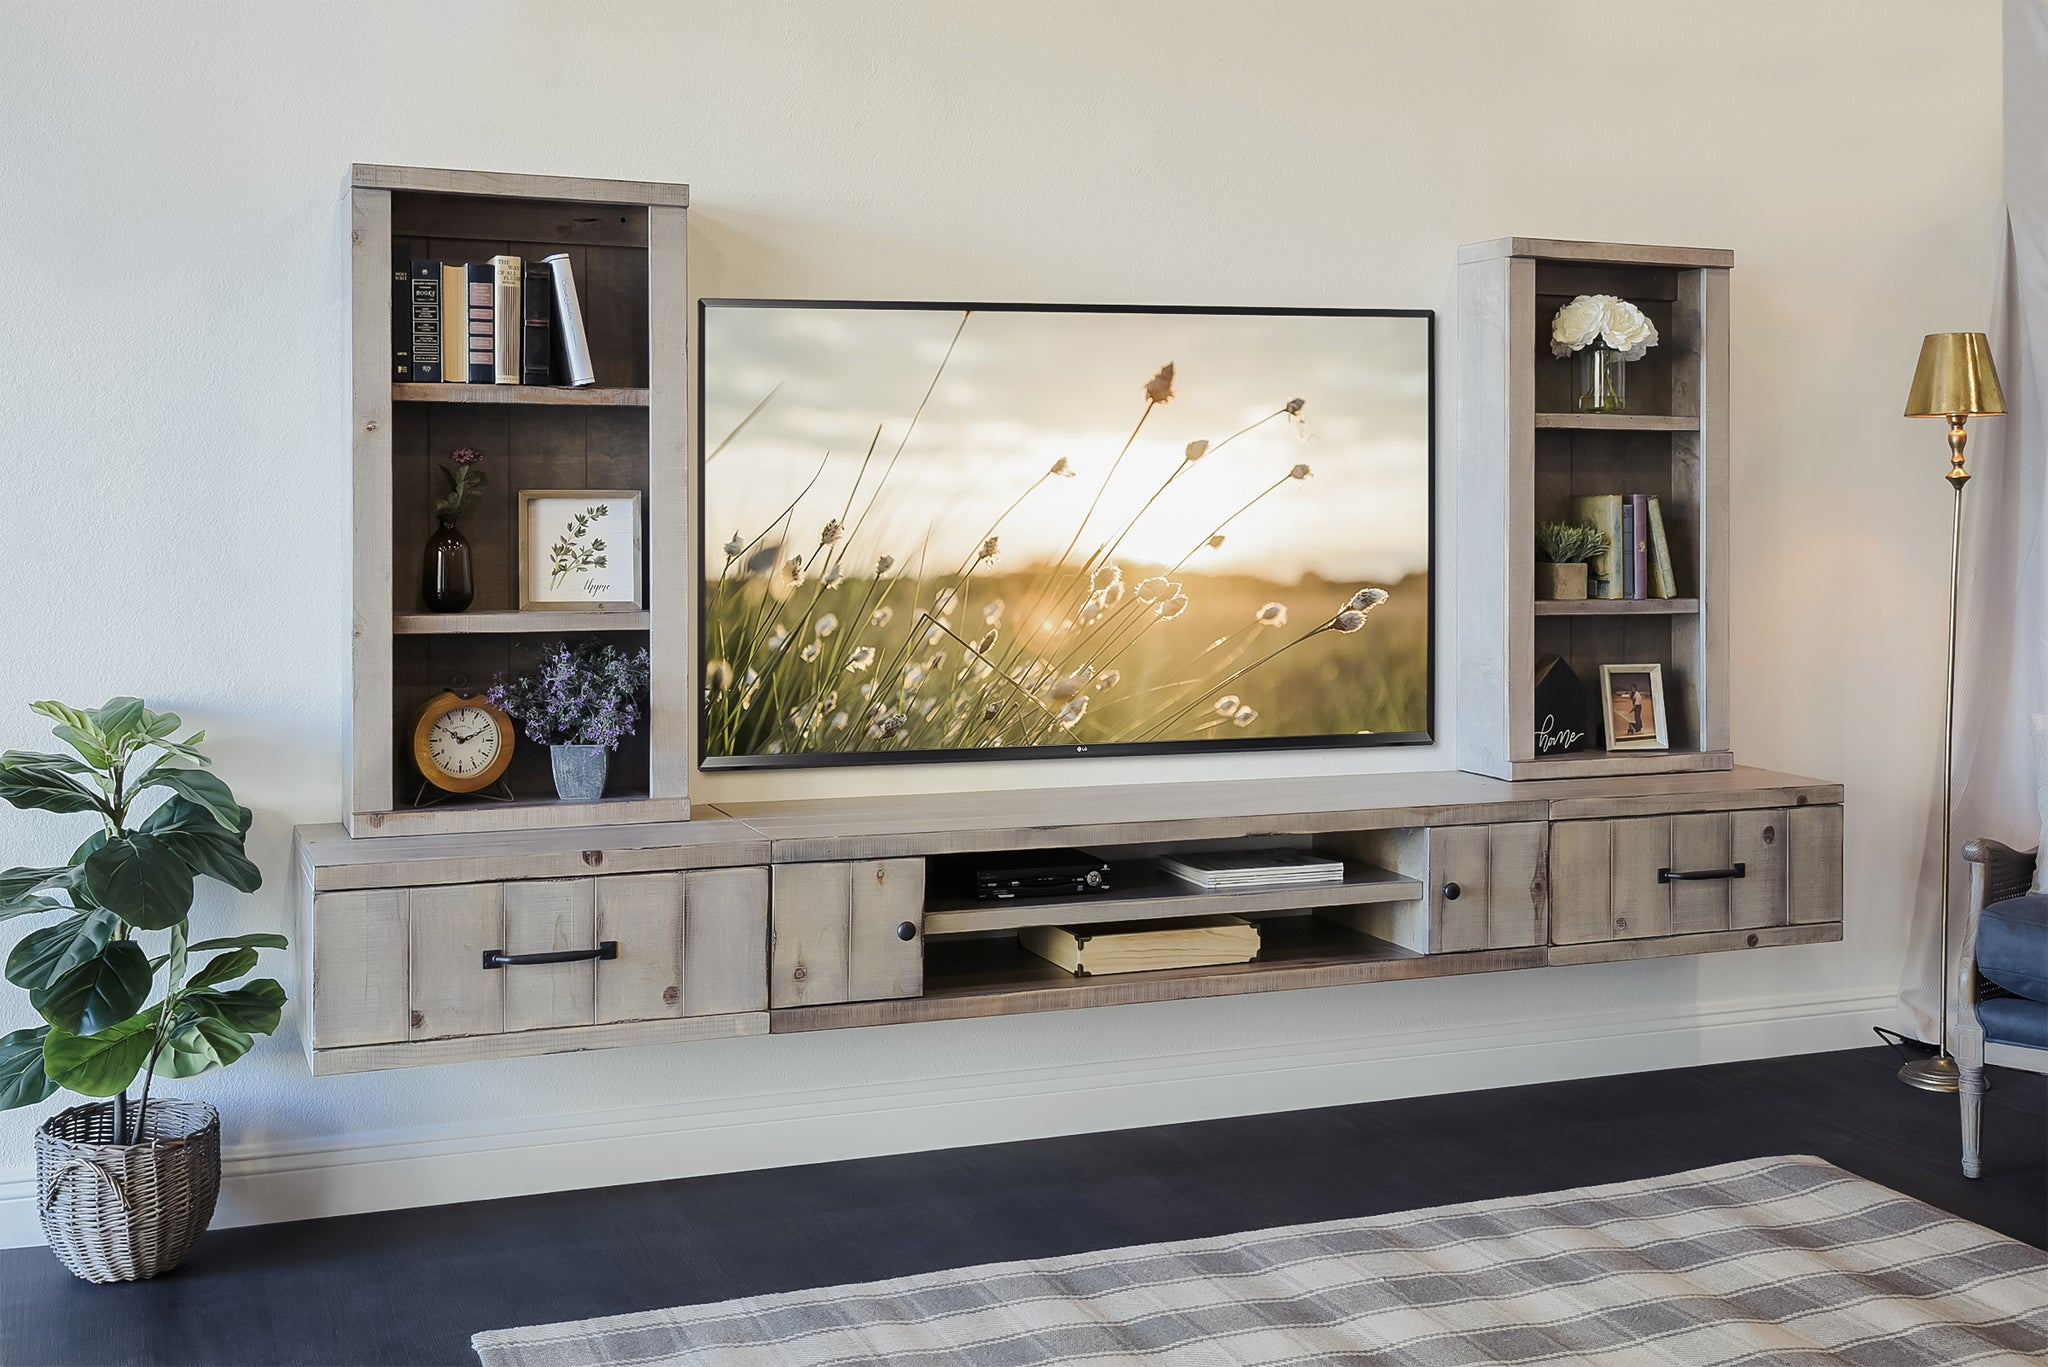 Gray Rustic Floating TV Stand Farmhouse Entertainment Center Console - Lakewood